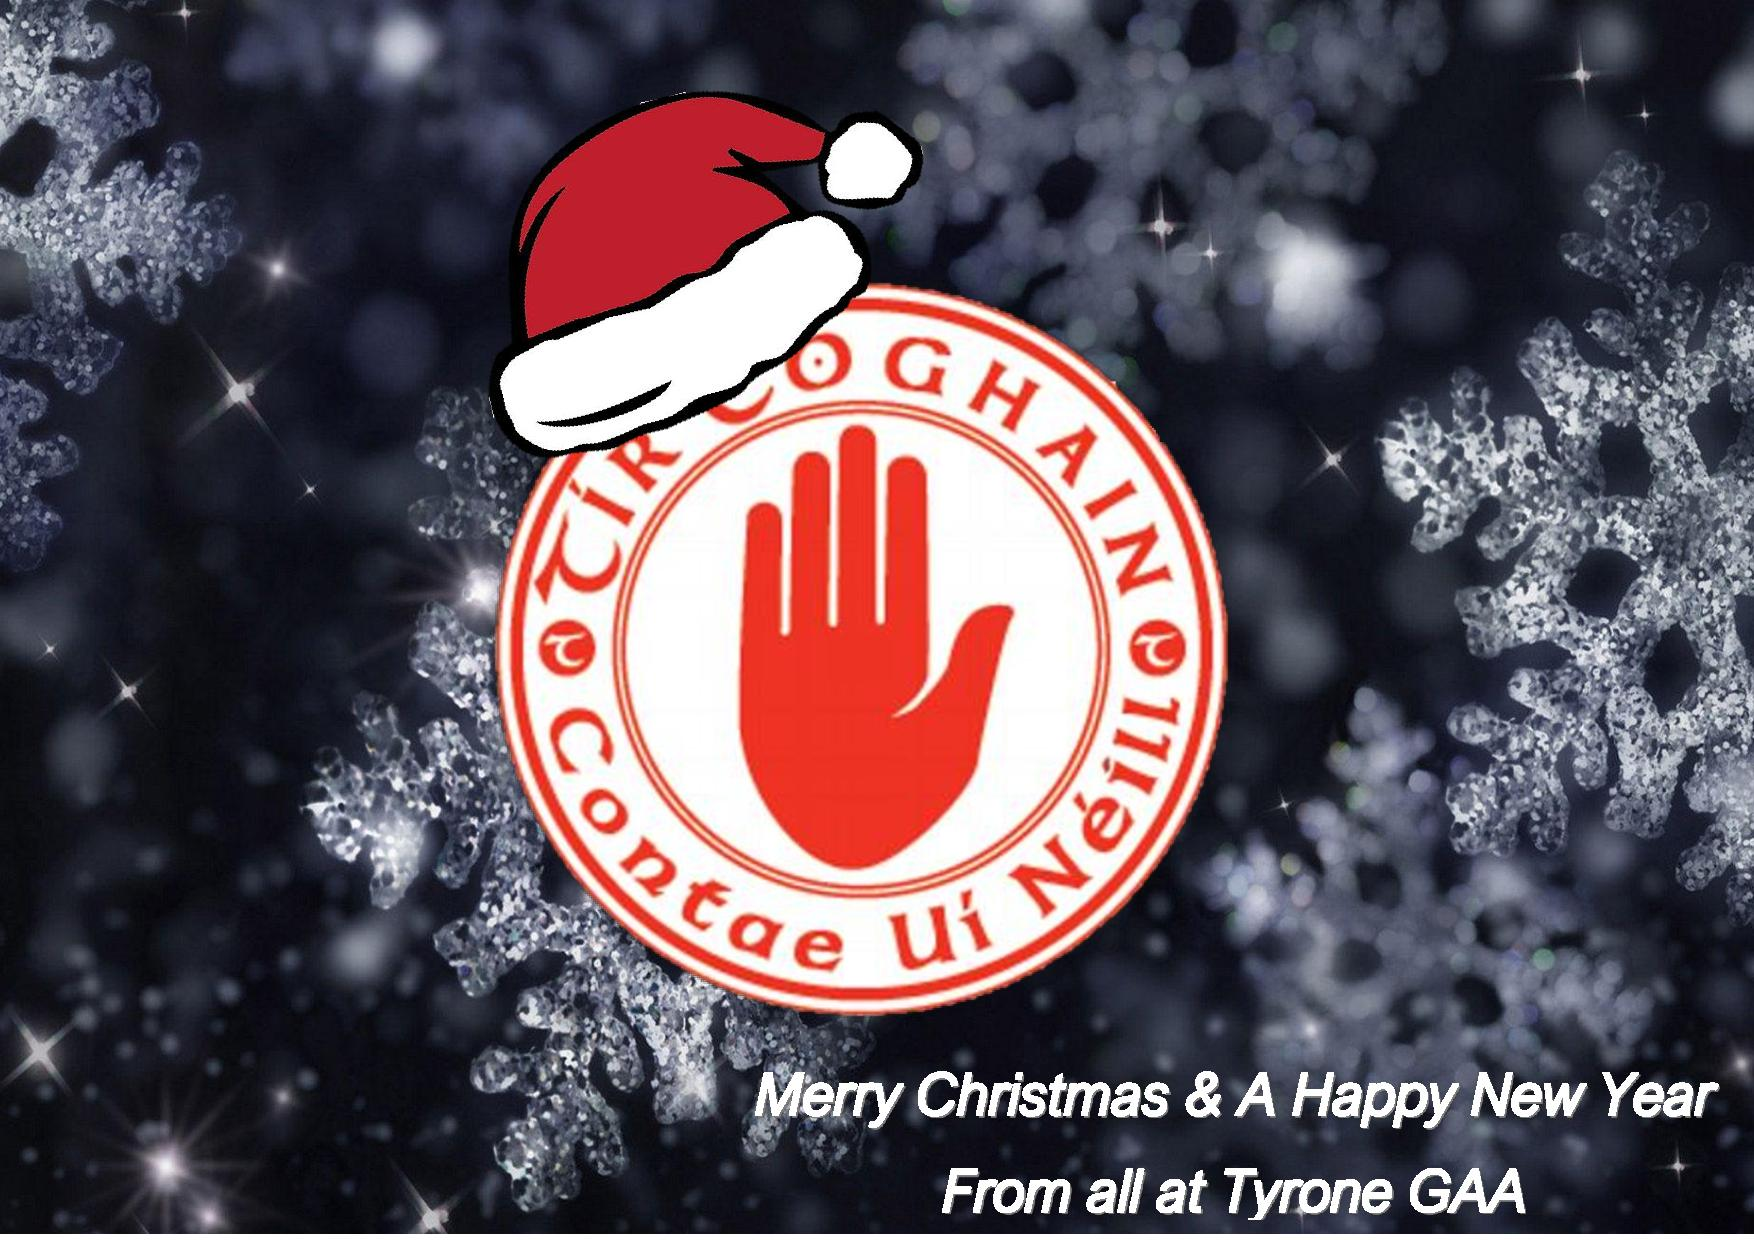 Happy Christmas & A Happy New Year to all Gaels